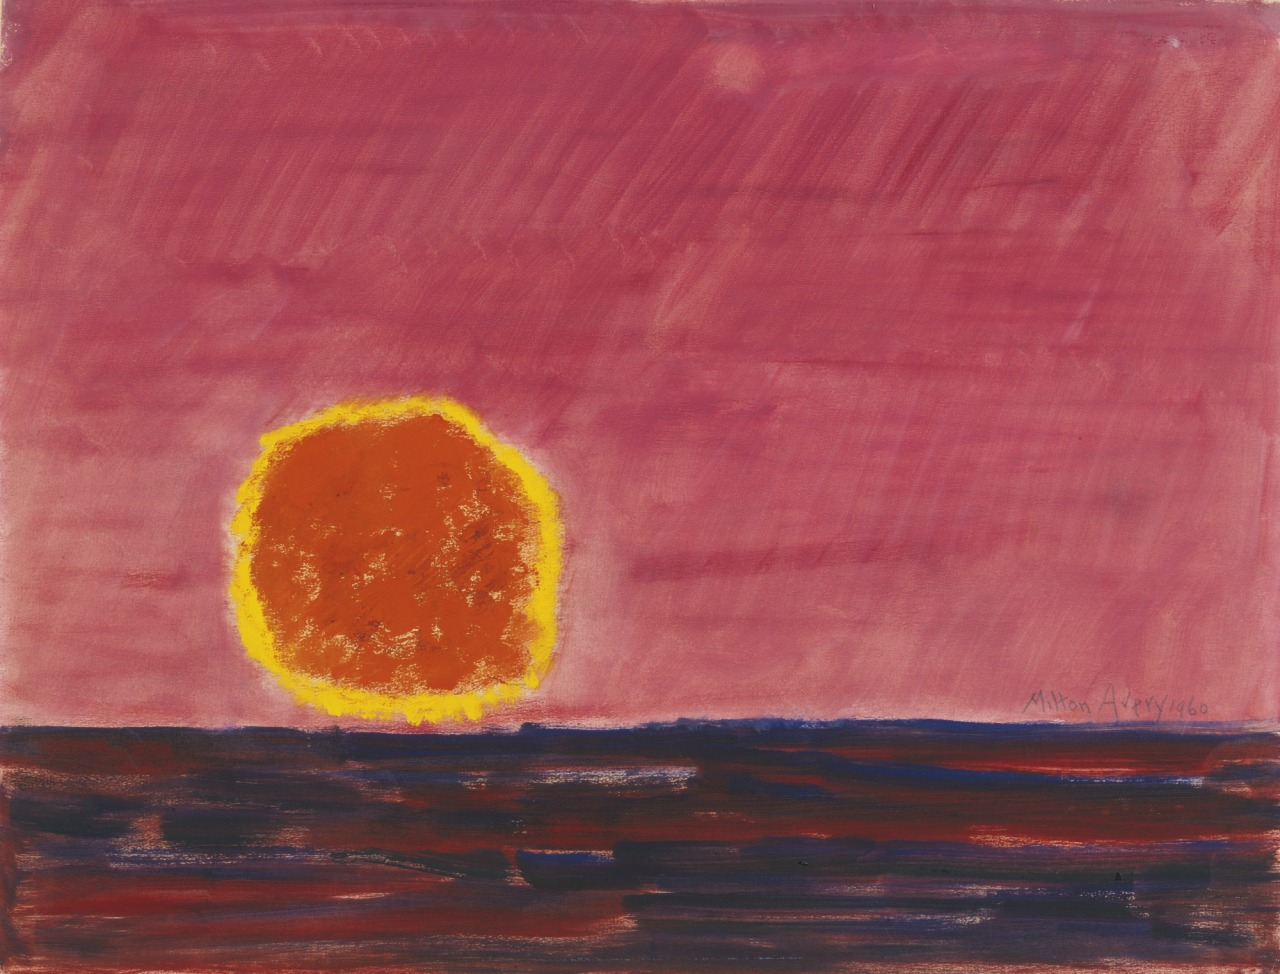 thunderstruck9:Milton Avery (American, 1885-1965), Ringed Sun, 1960. Oil on paper, 17 1/2 x 23 in.